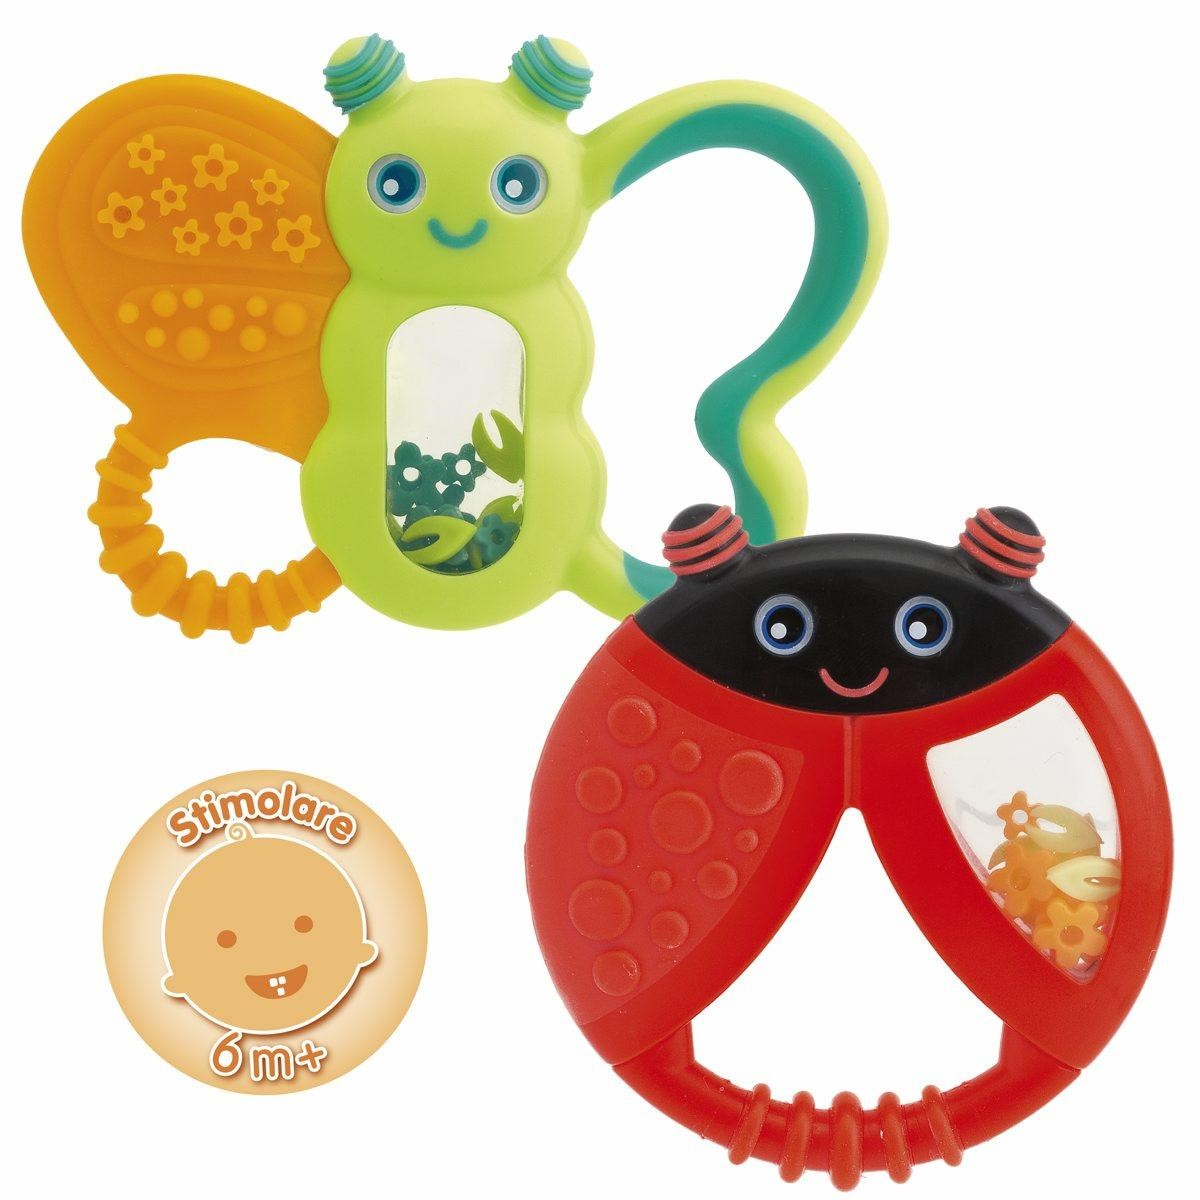 CH210025800000 CHICCO NF FUNNY RELAX TEETHING RING (2)